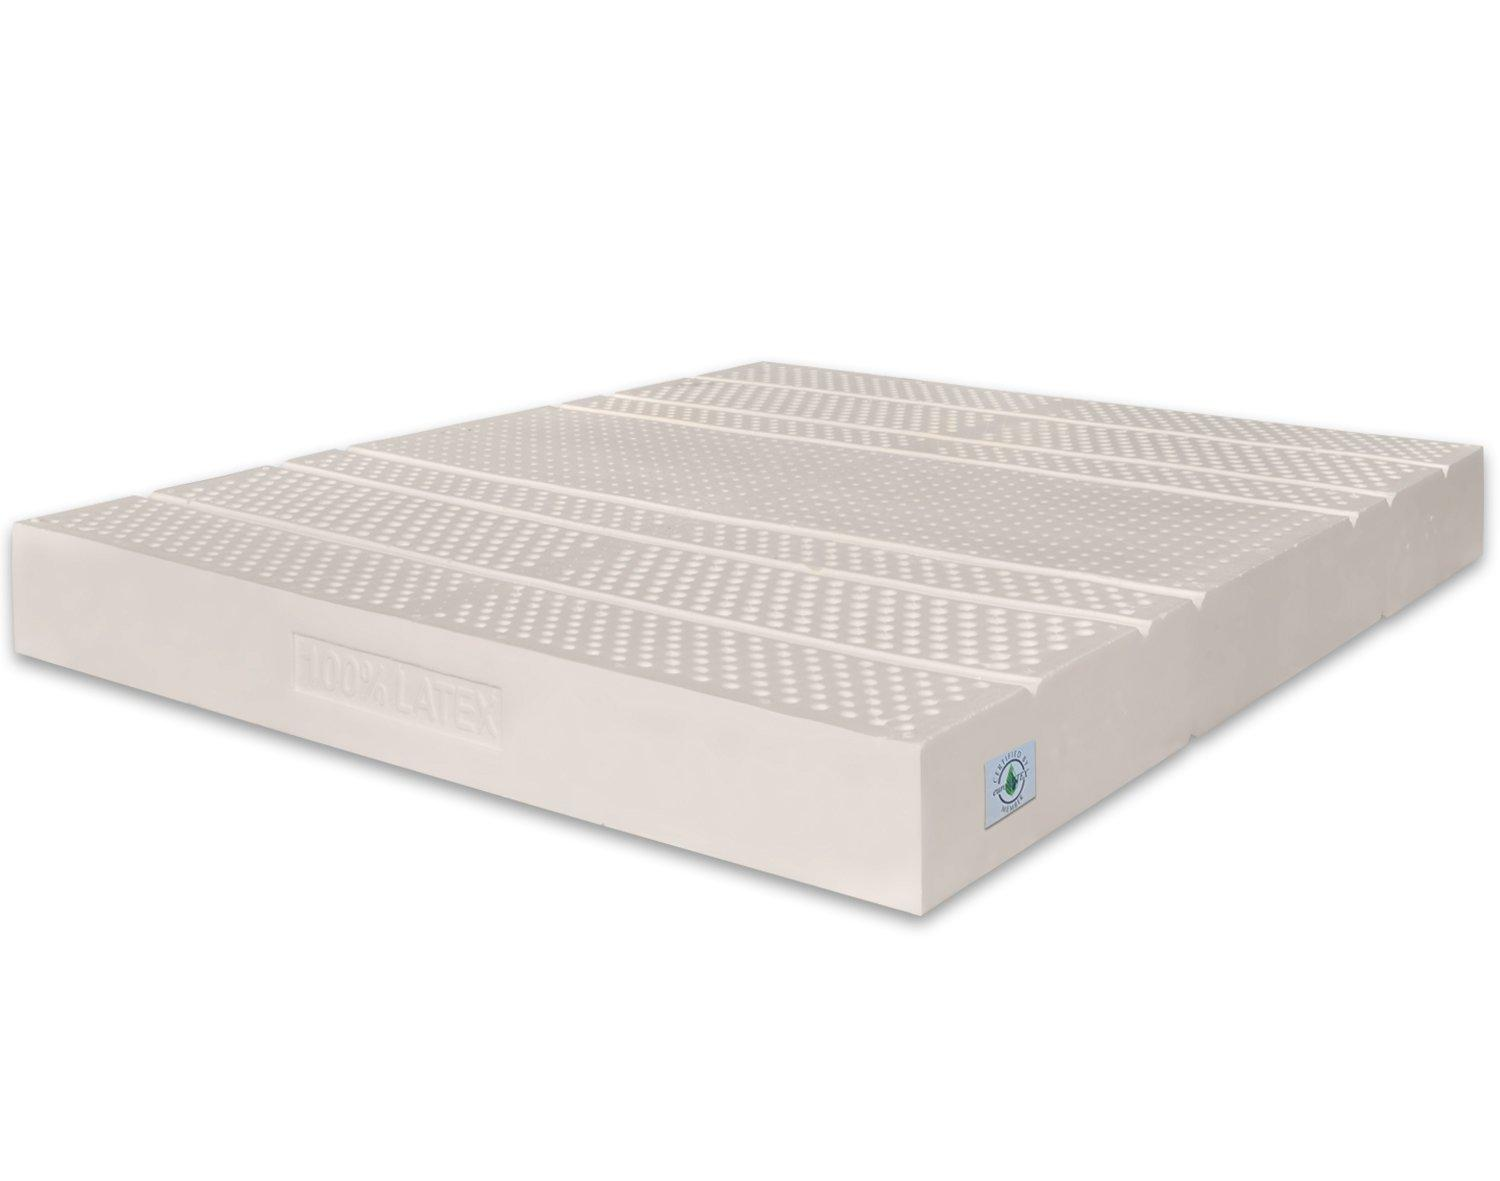 Marcapiuma Latex Mattress Anatomical 7 Zones Orthopaedic Mattress